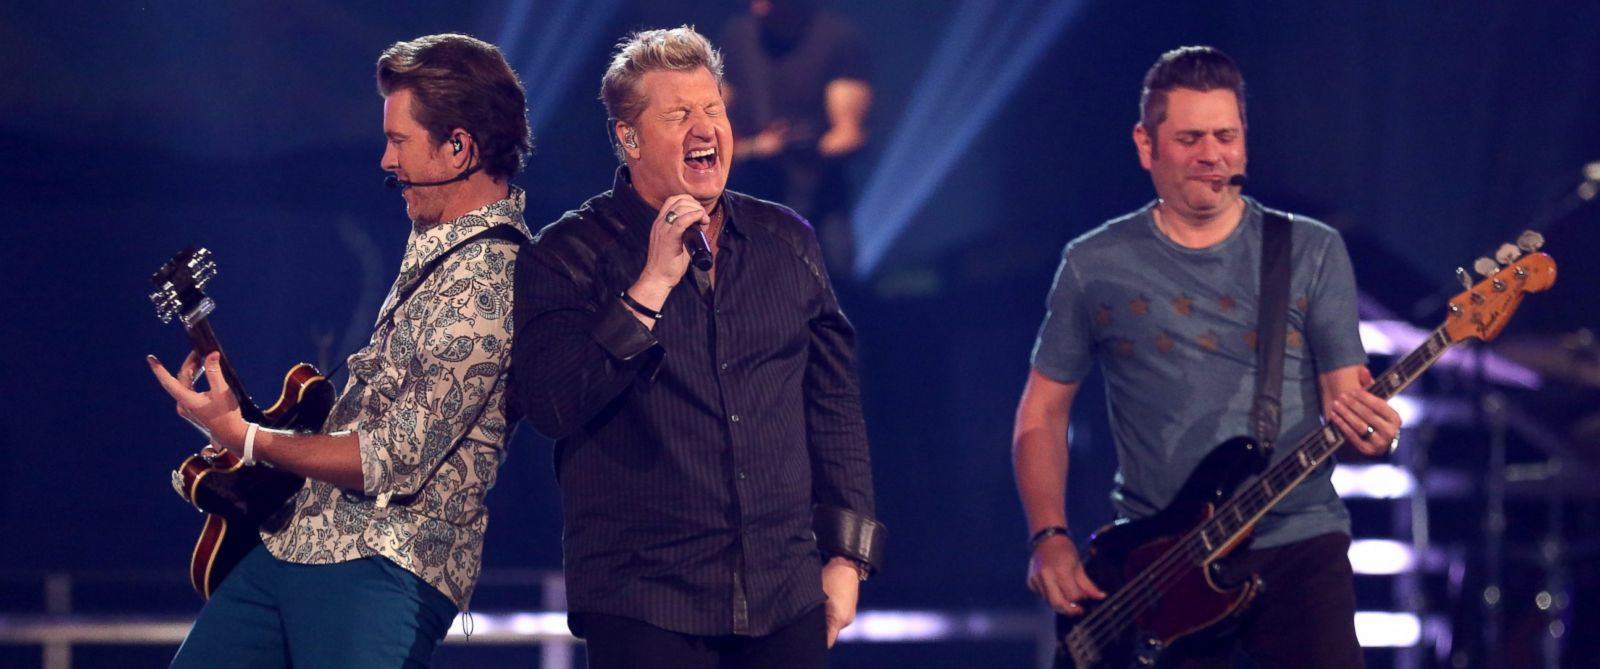 PHOTO: From left, Joe Don Rooney, Gary LeVox and Jay DeMarcus of the band Rascal Flatts perform onstage at the ACM Fan Jam during the 49th Annual Academy of Country Music Awards at the Mandalay Bay Events Center on April 6, 2014 in Las Vegas, Nevada.